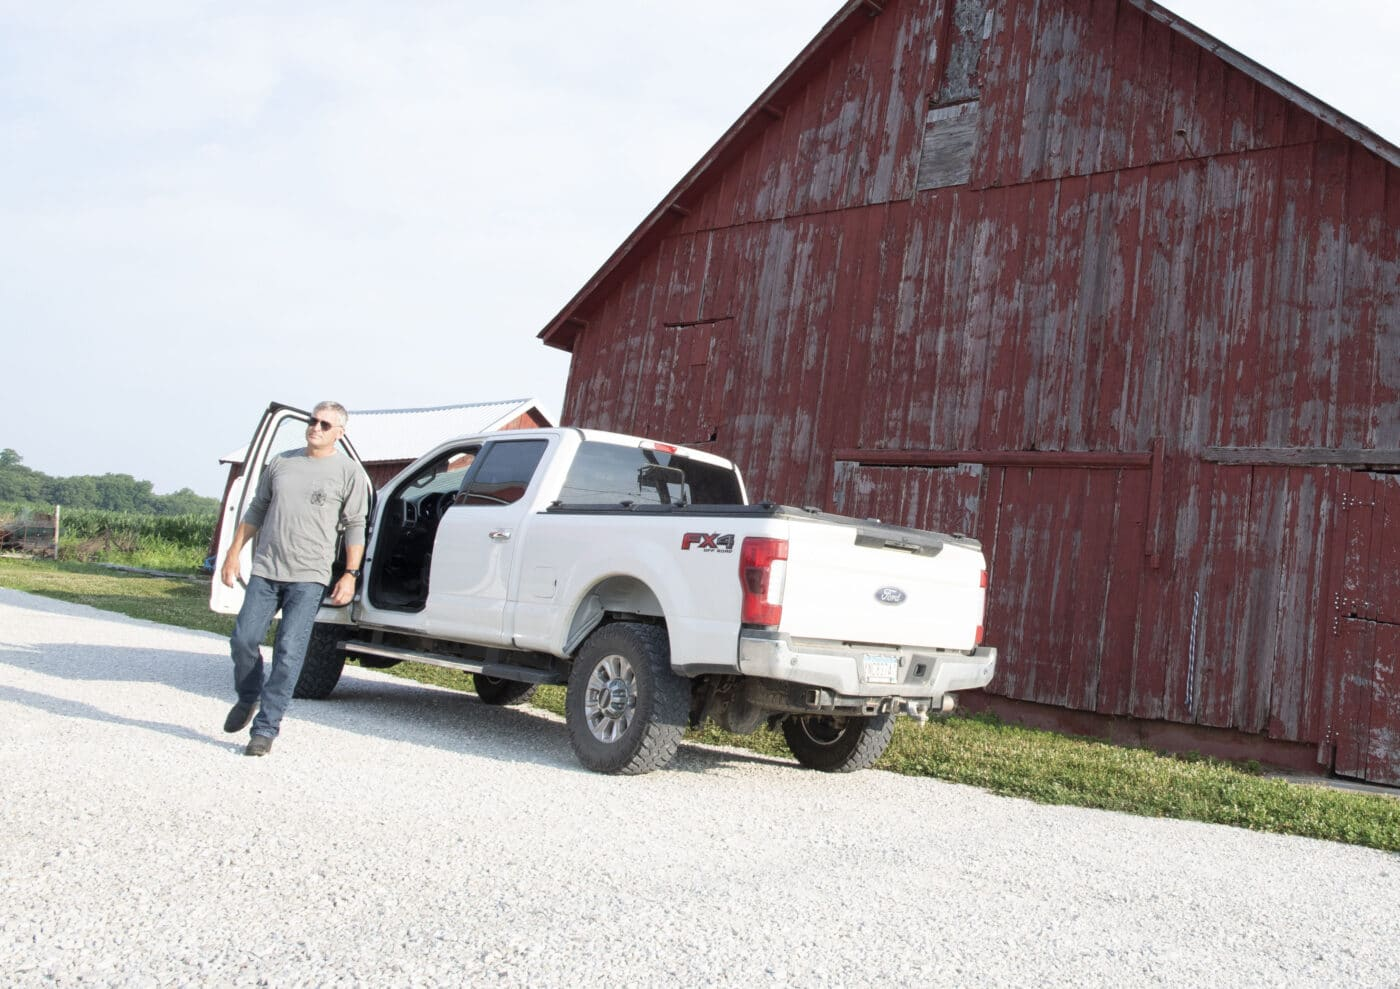 Man on farm property with truck and barn